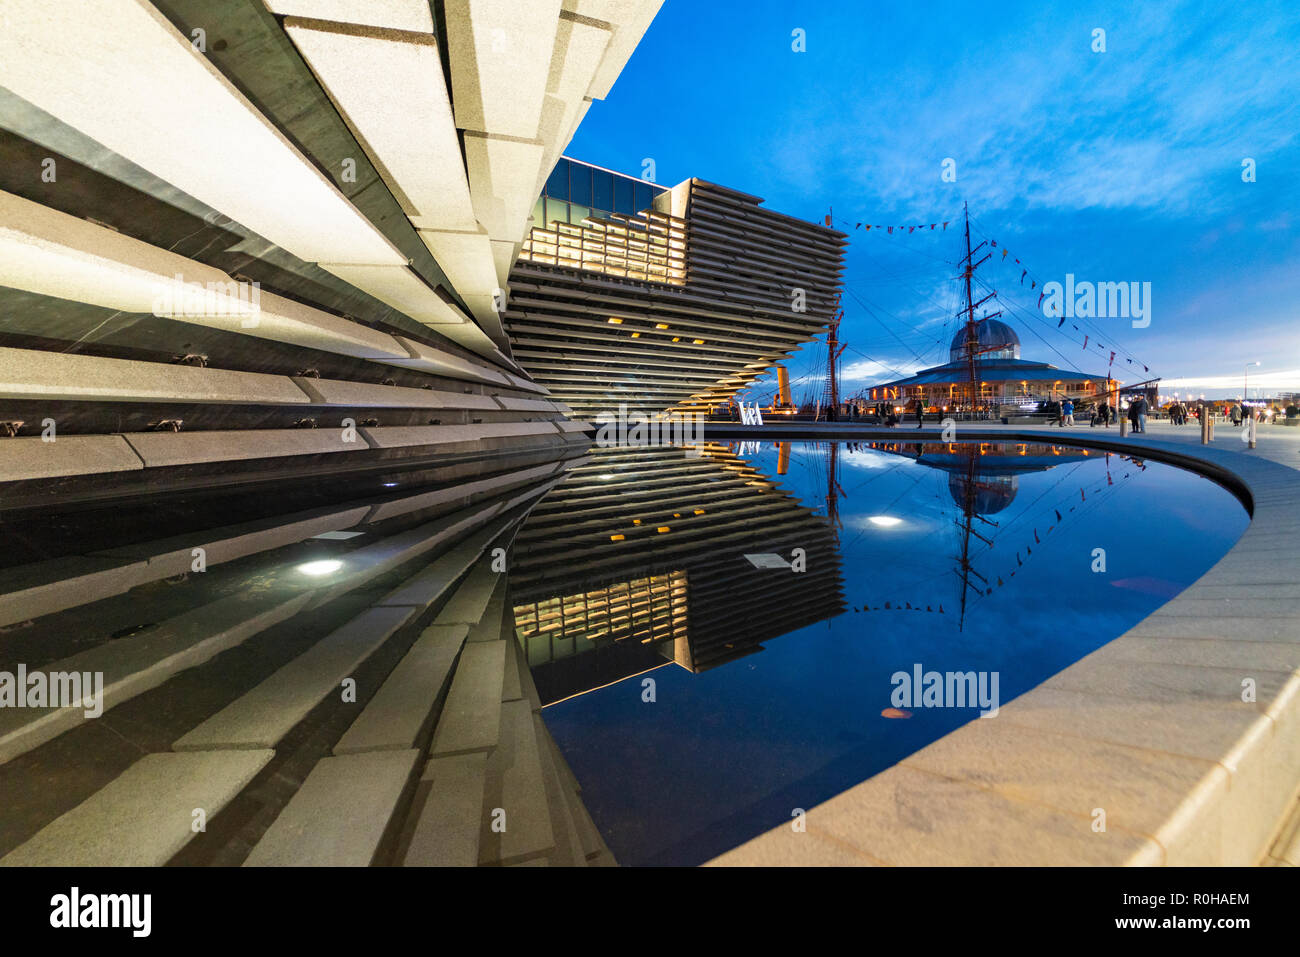 Exterior view of new V&A Museum in the evening in Dundee, Scotland, UK. Architect Kengo Kuma. - Stock Image